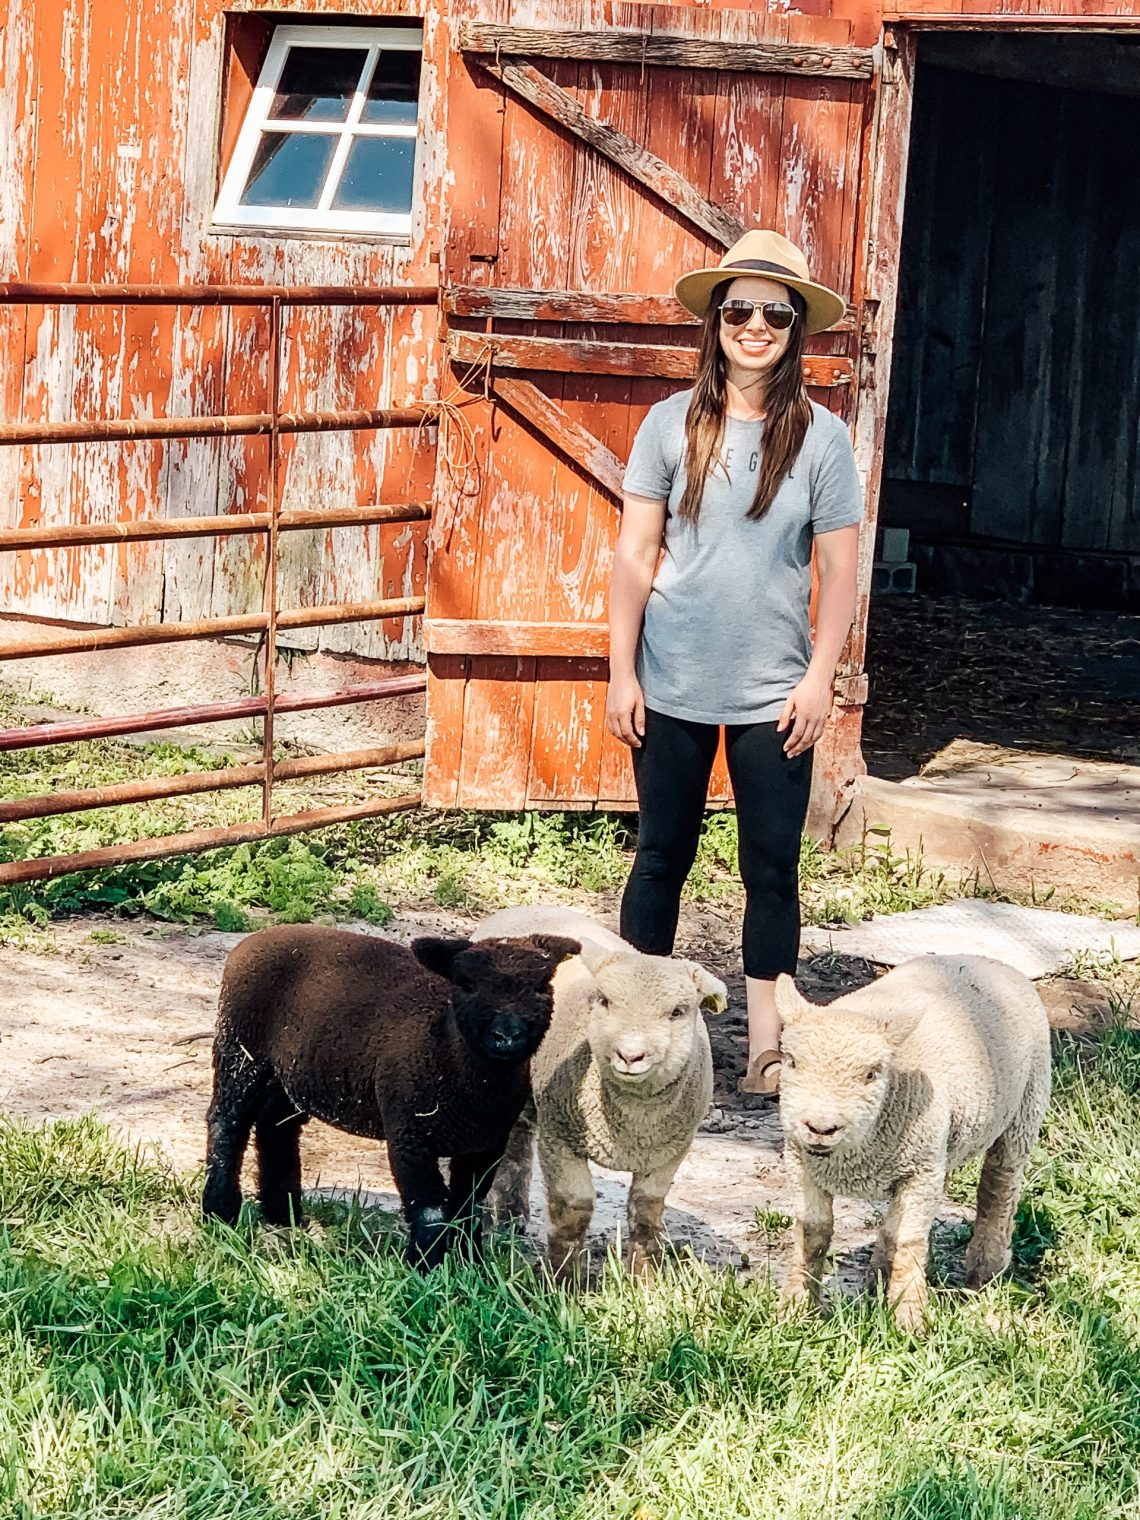 This Week at the Farm 16: Lambs, Chicks, Garden